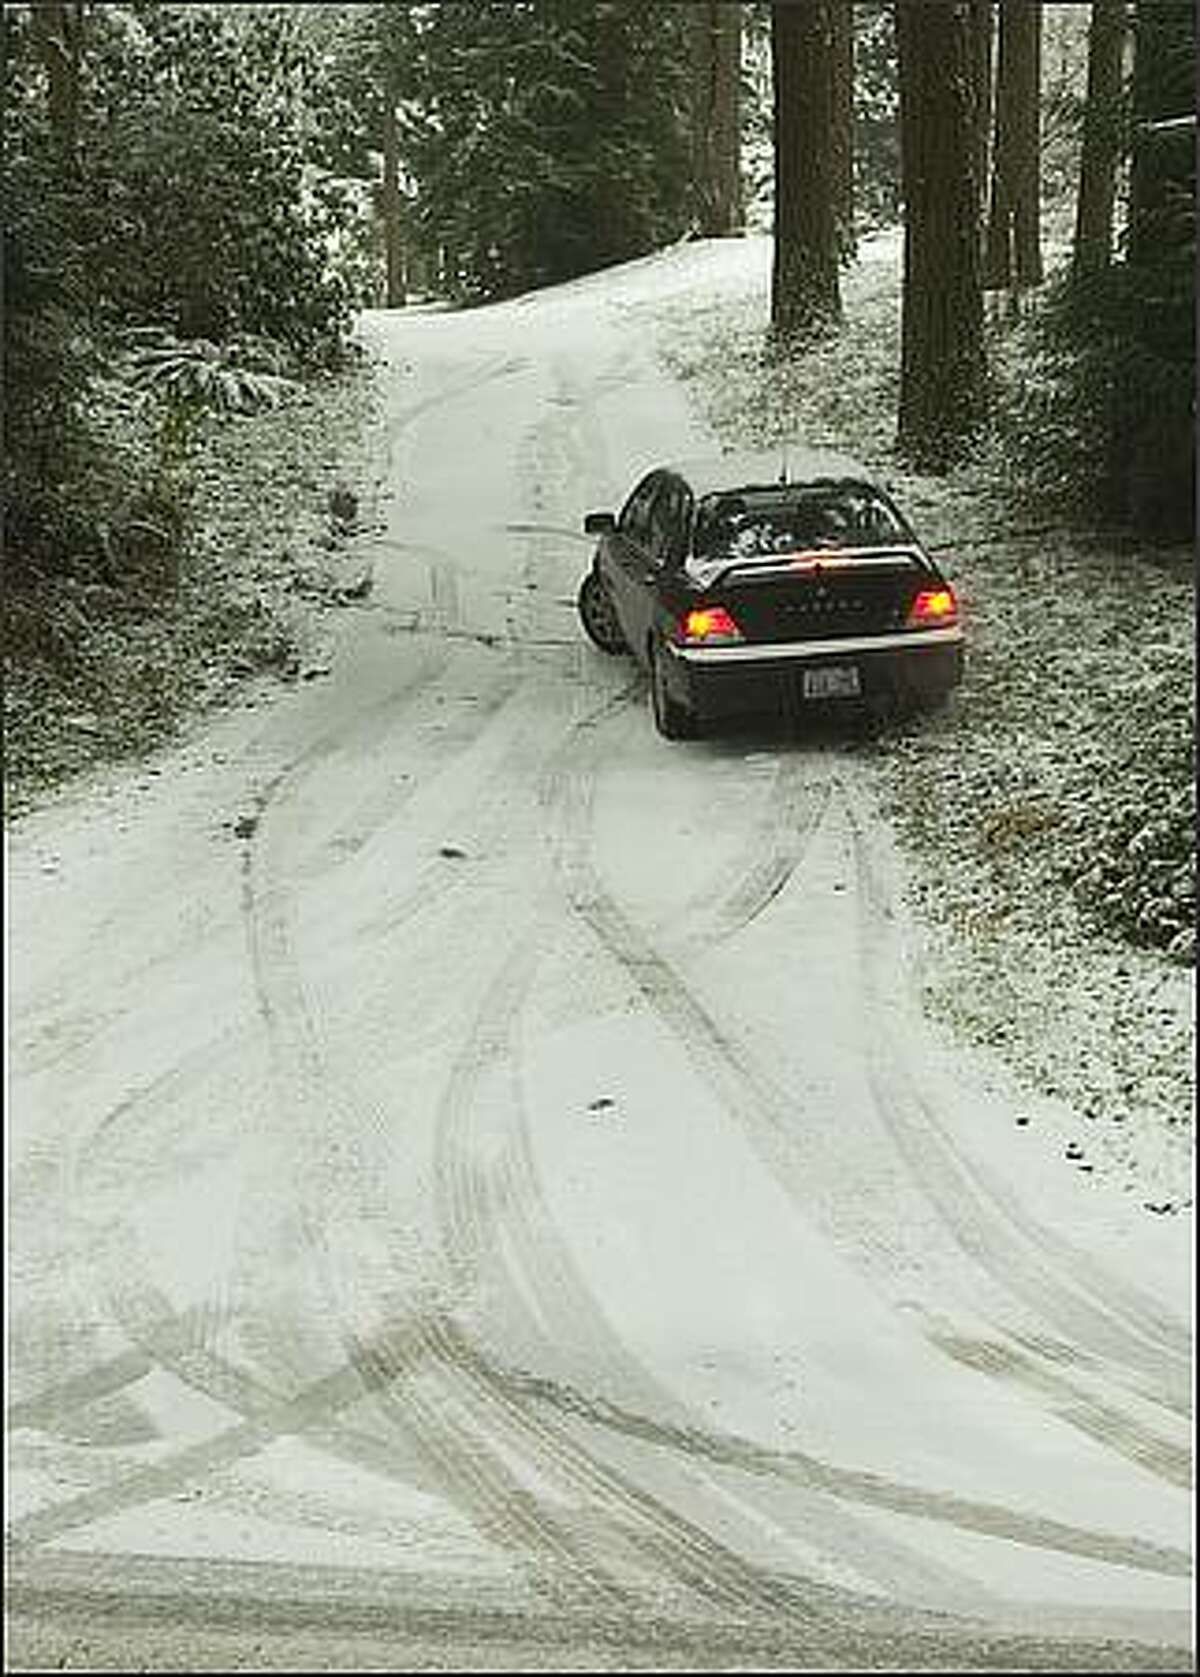 A driver failed to get up a private road off Butternut Road in south Snohomish County on Thursday. He decided to park the car down the road and walk in.